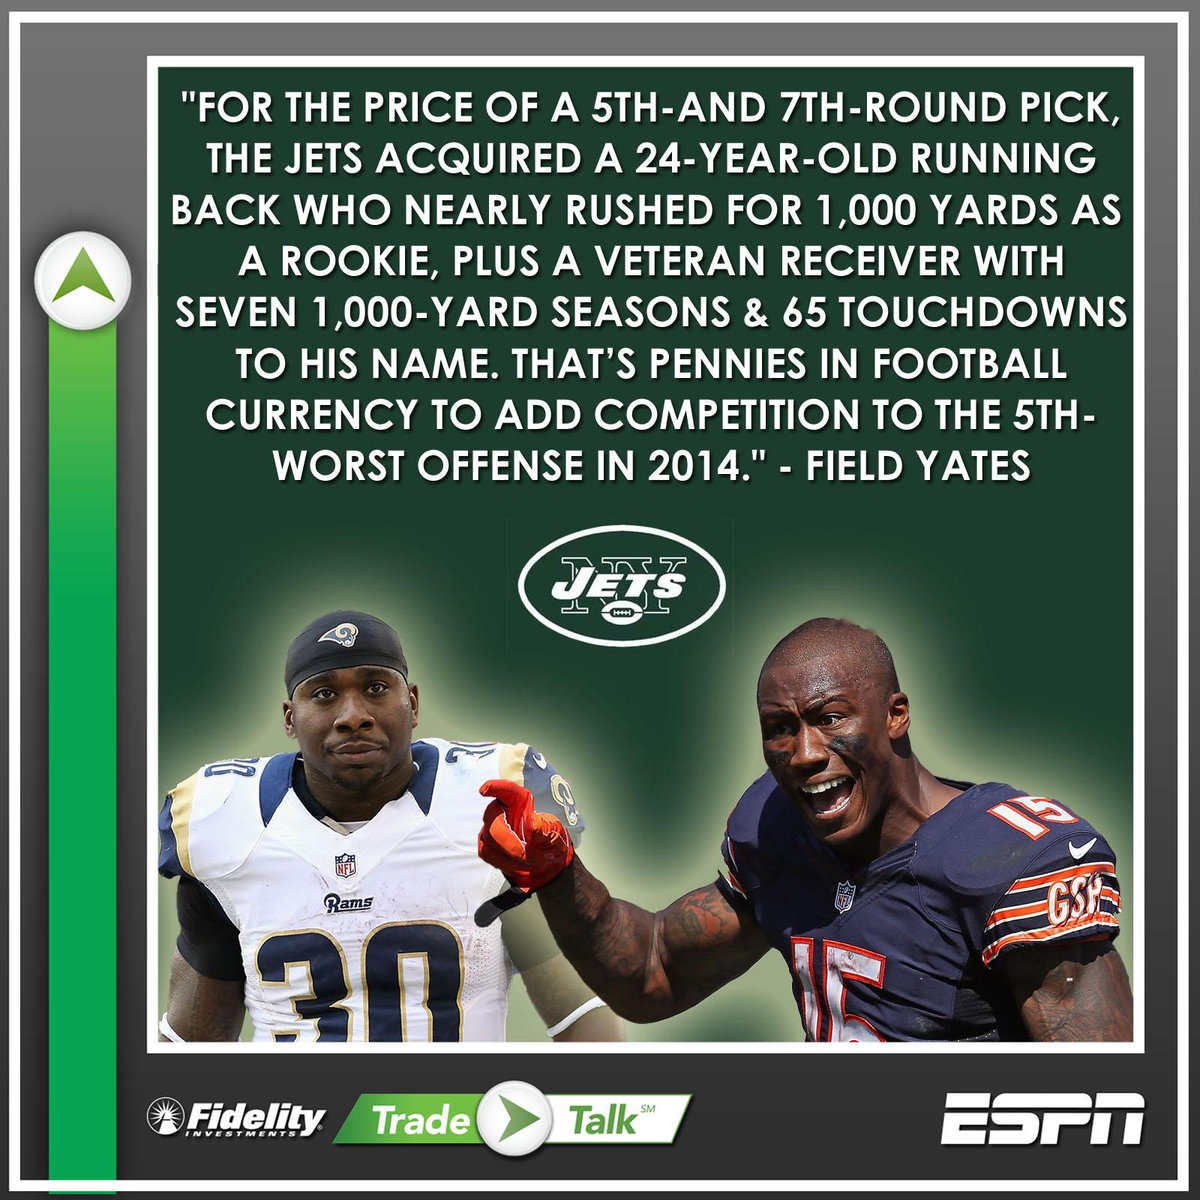 Nfl analyst @fieldyates has some strong @fidelity # ...